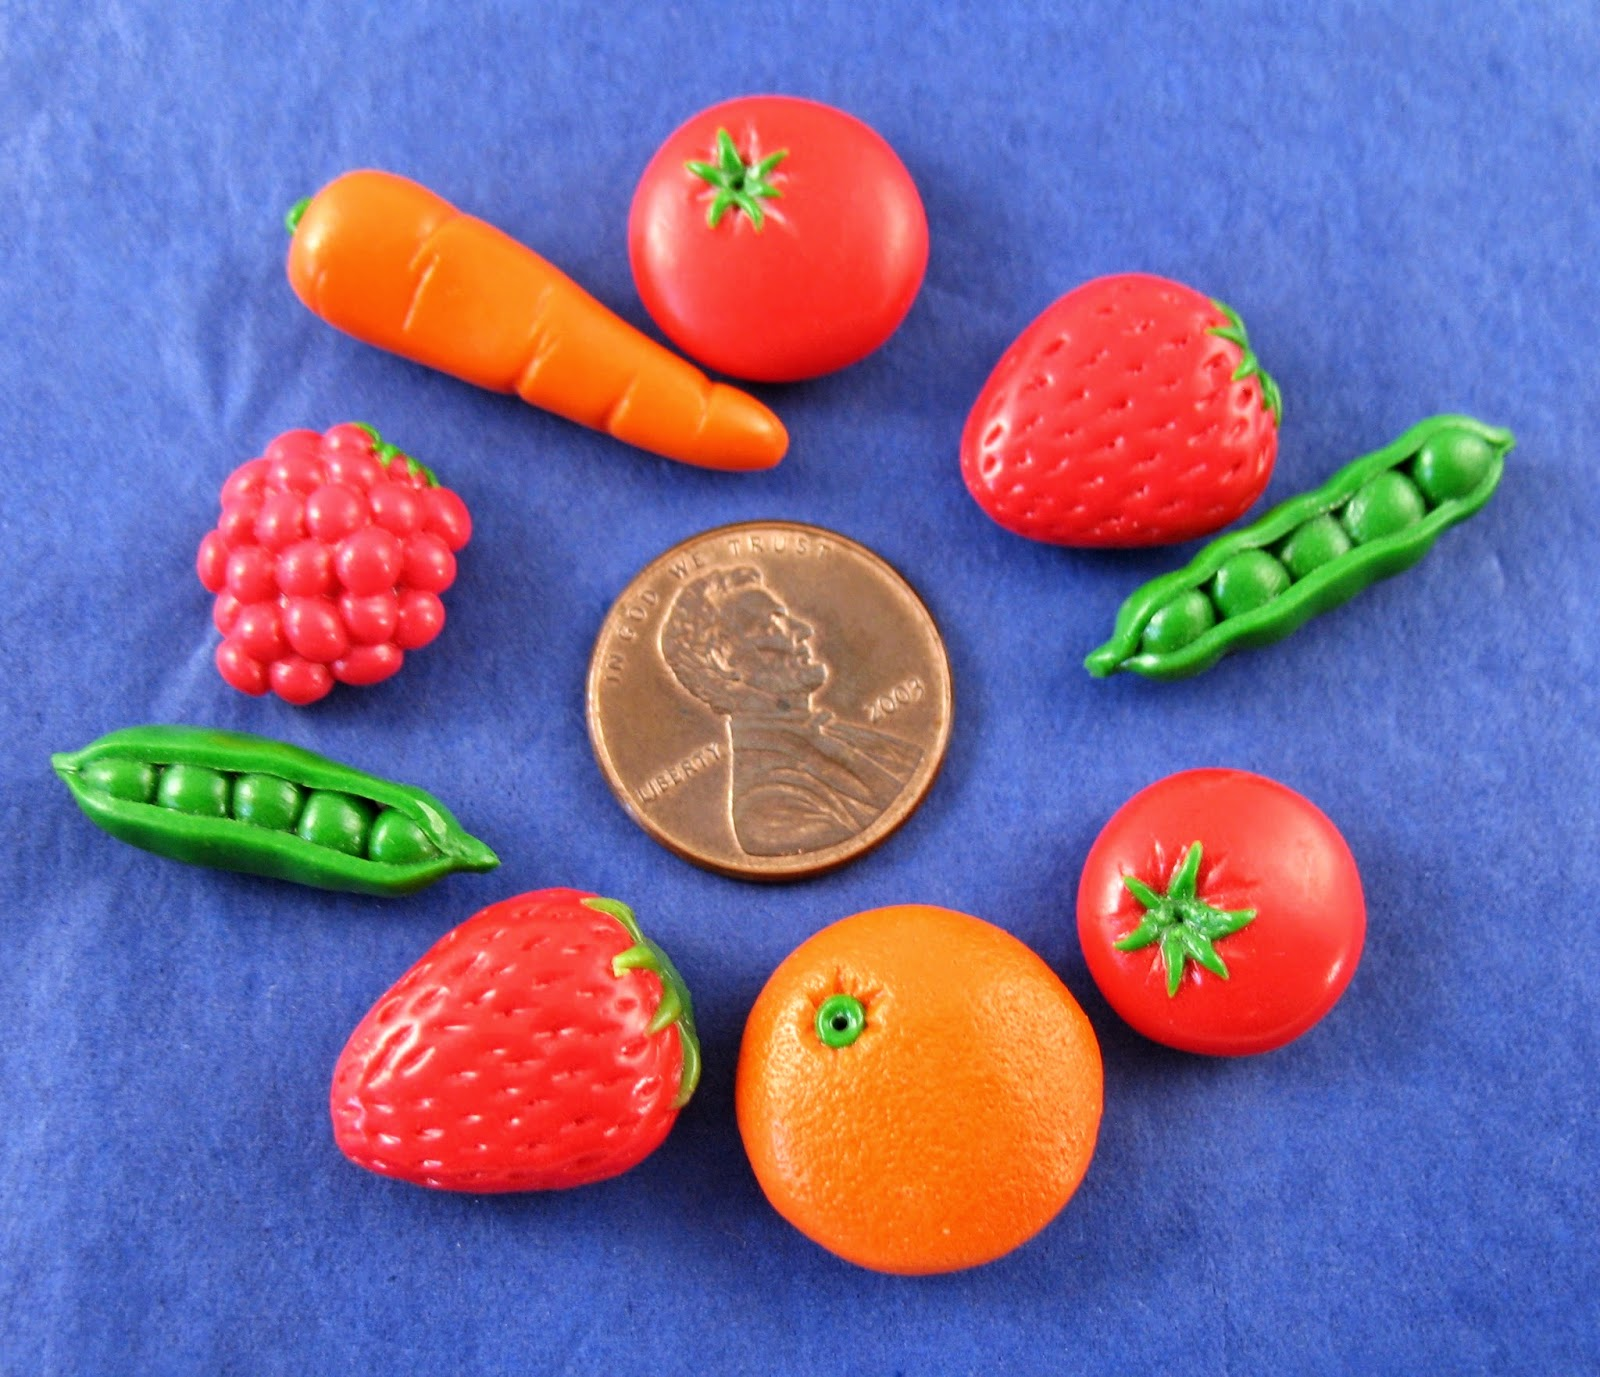 https://www.etsy.com/listing/206845061/fruit-and-vegetable-magnets?